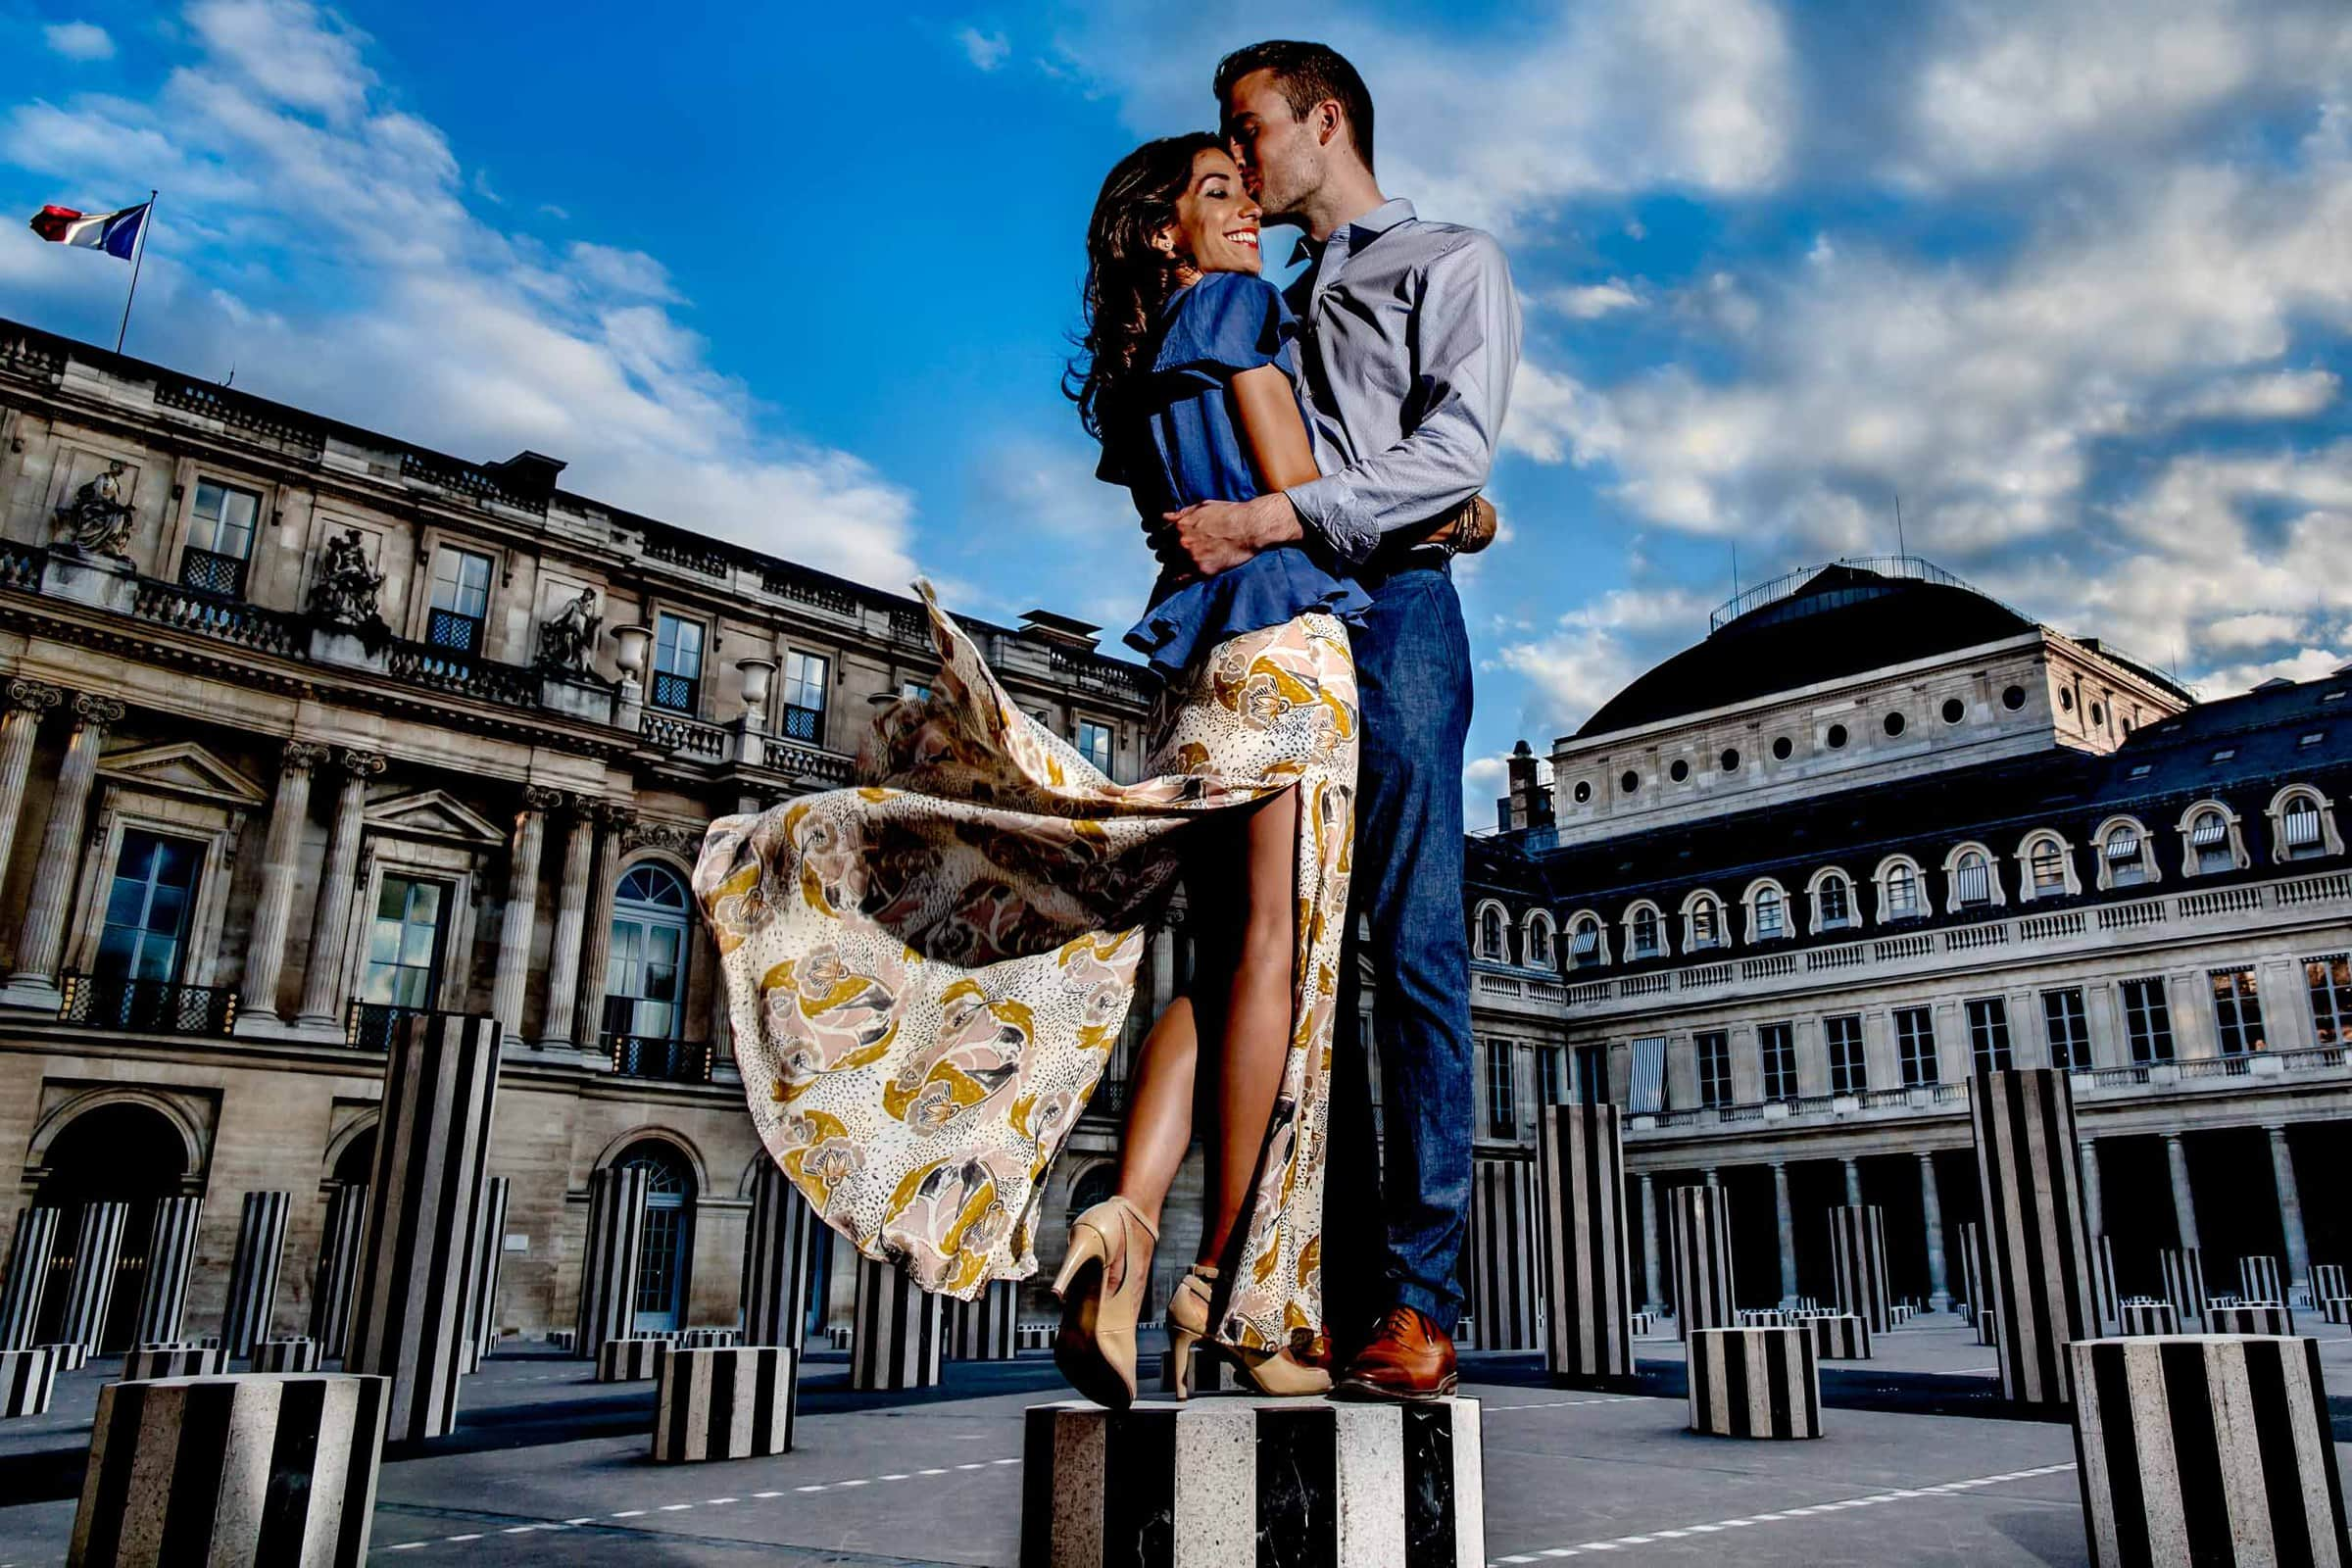 A creative portrait of a couple embracing one another during their Paris engagement photo session